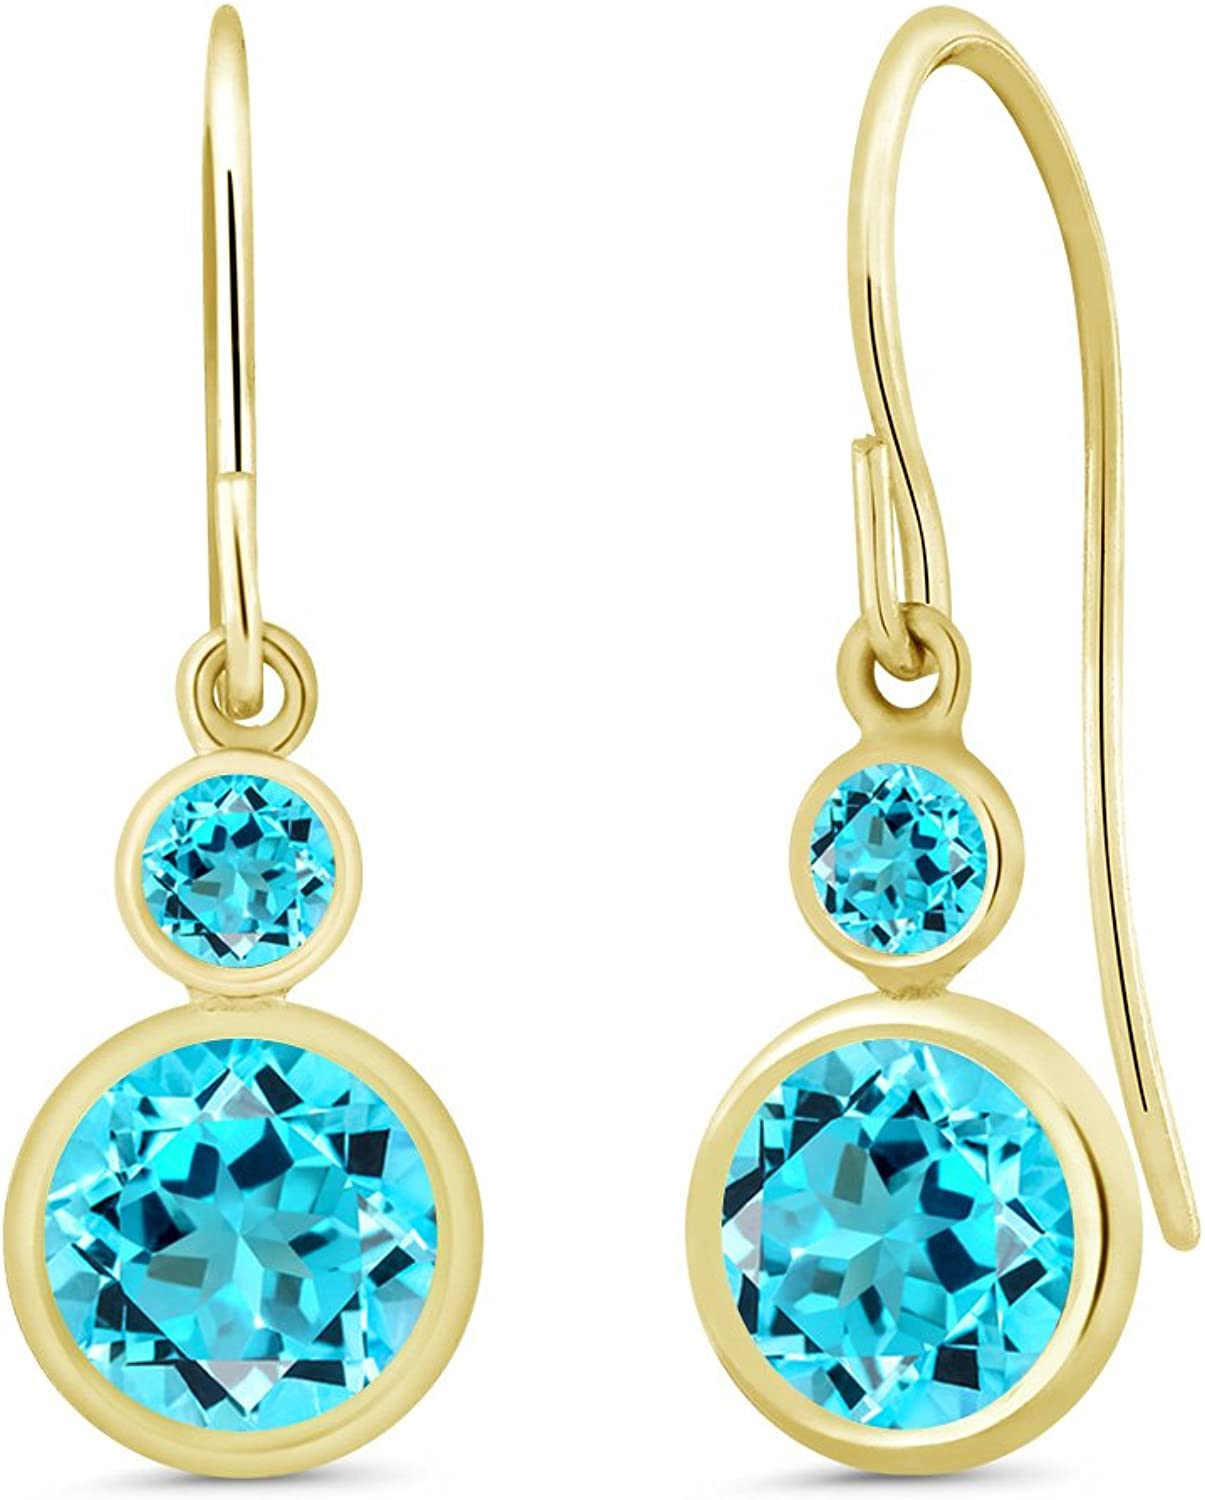 2.30 Ct Round Swiss bluee Topaz 14K Yellow gold Earrings